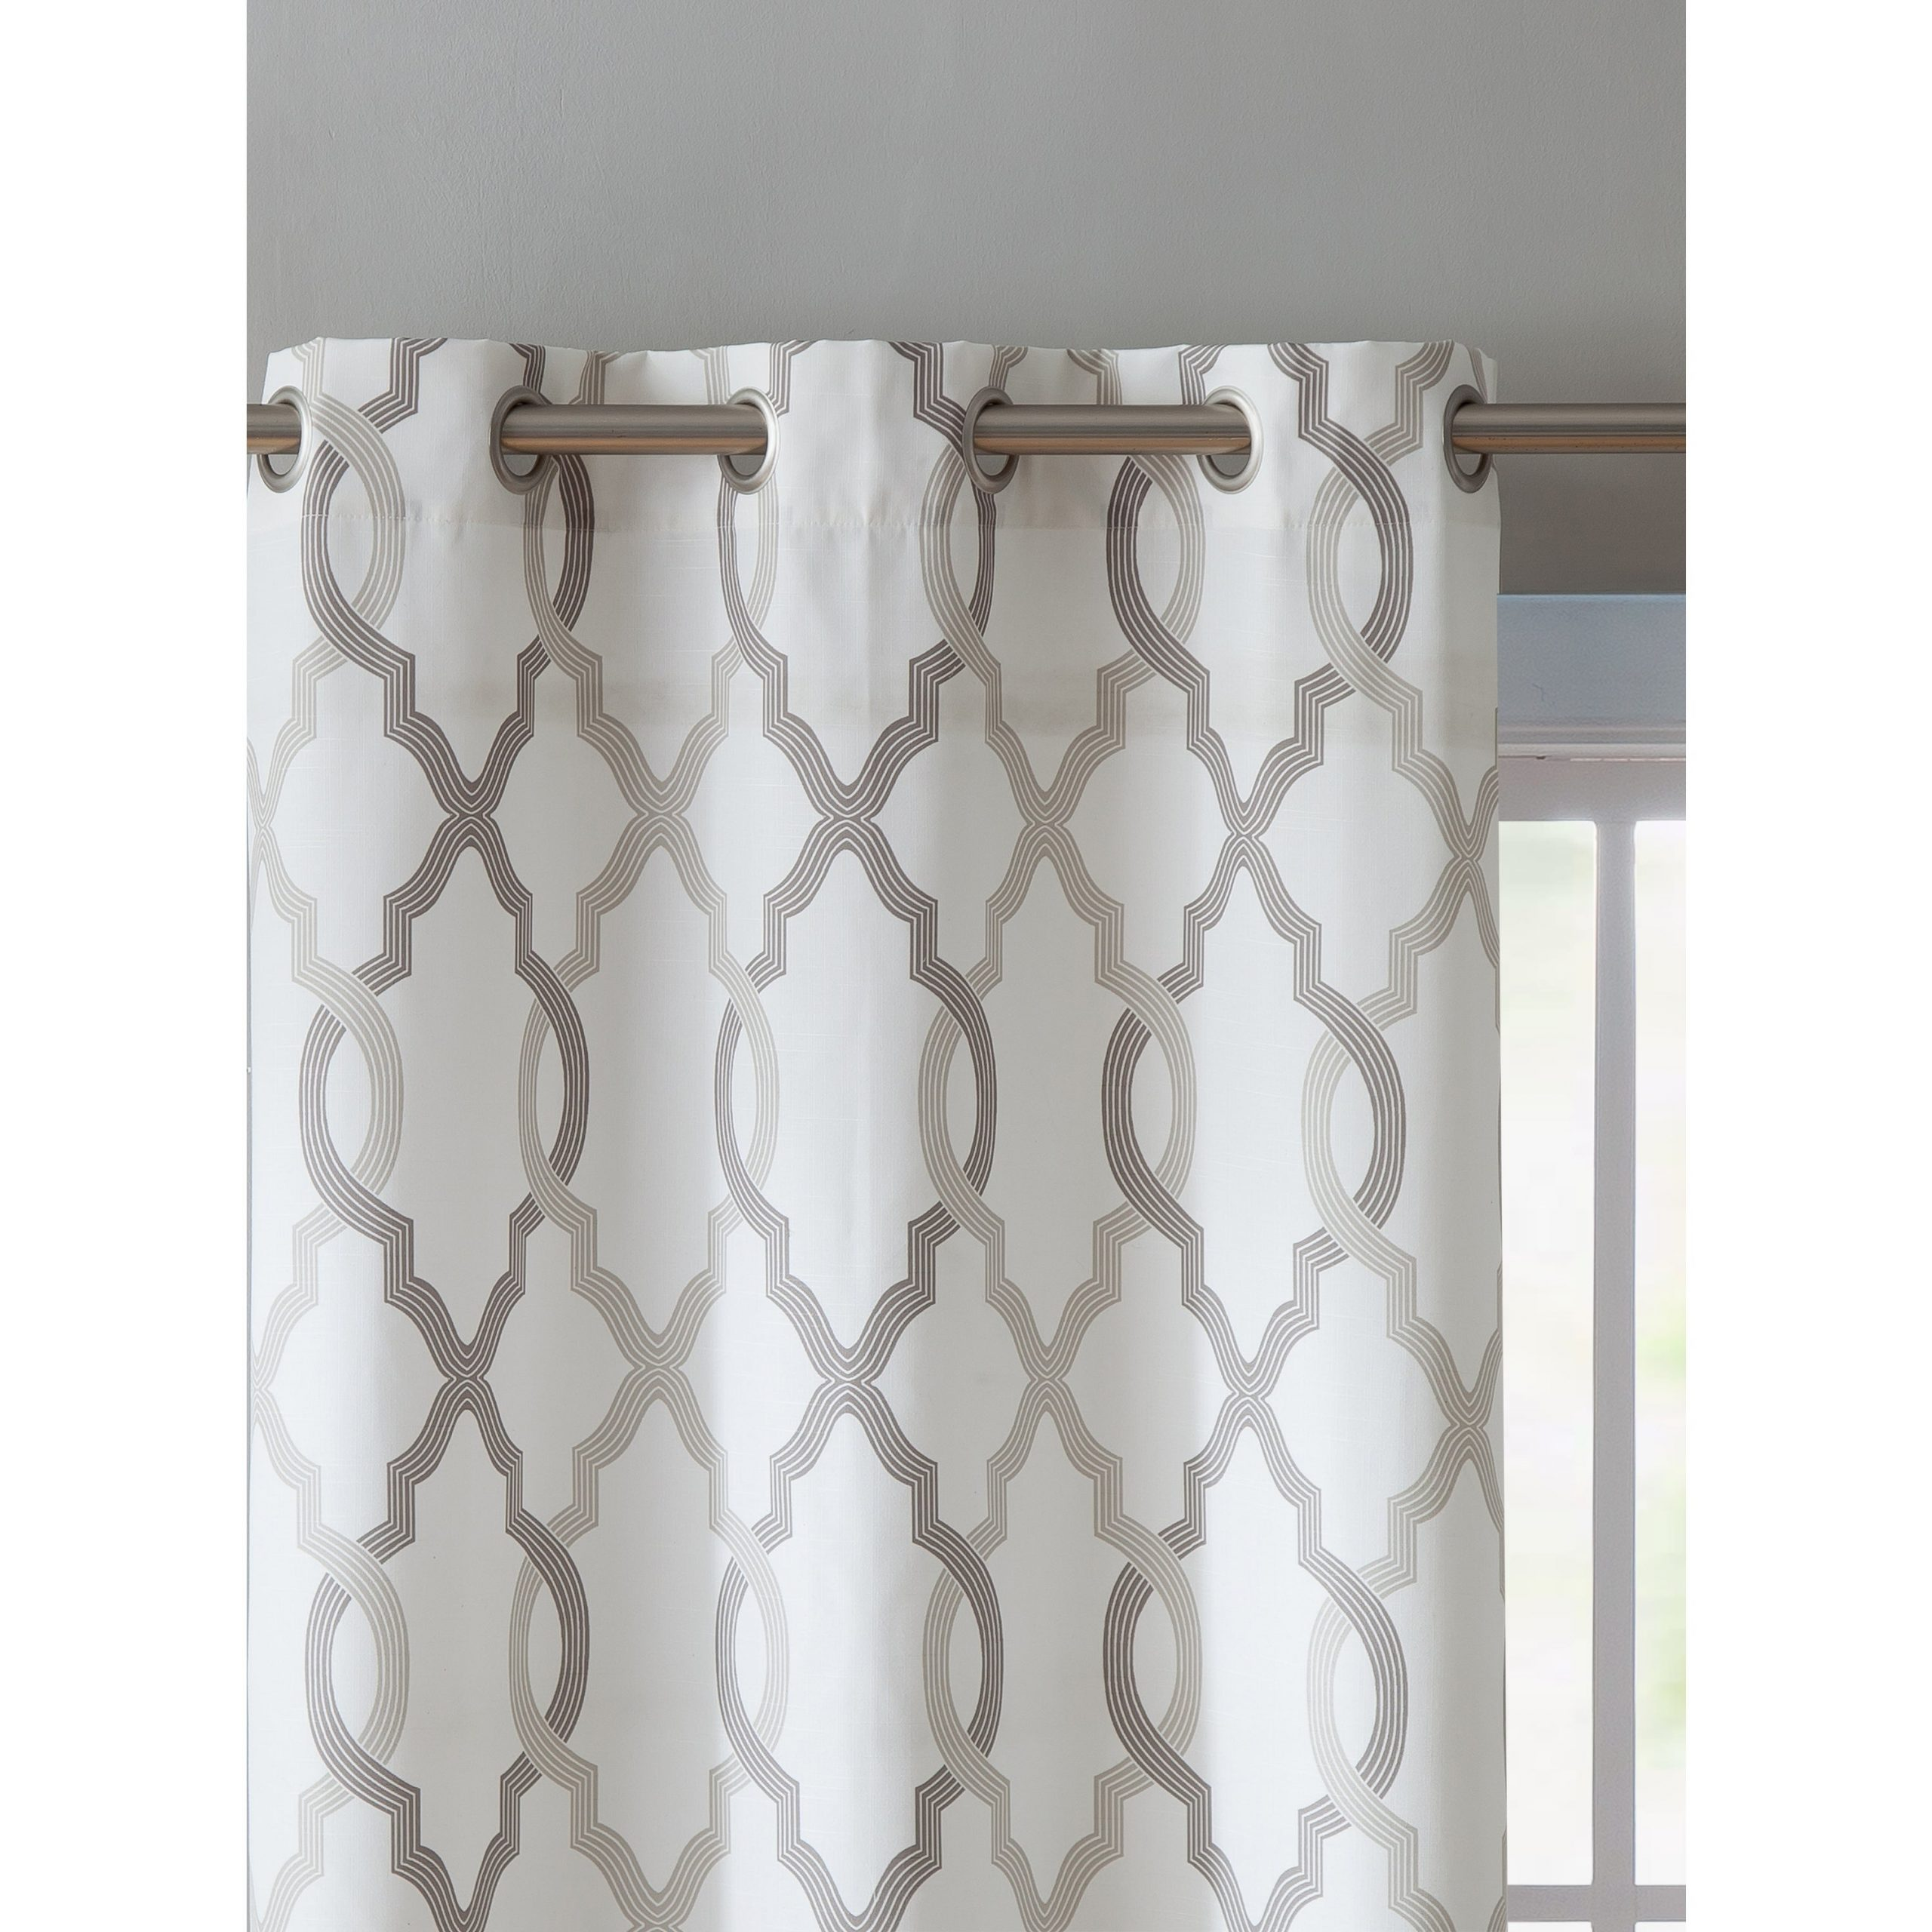 Caldwell Curtain Panel Pairs Within 2021 Vcny Home Caldwell Curtain Panel Pair (View 7 of 20)